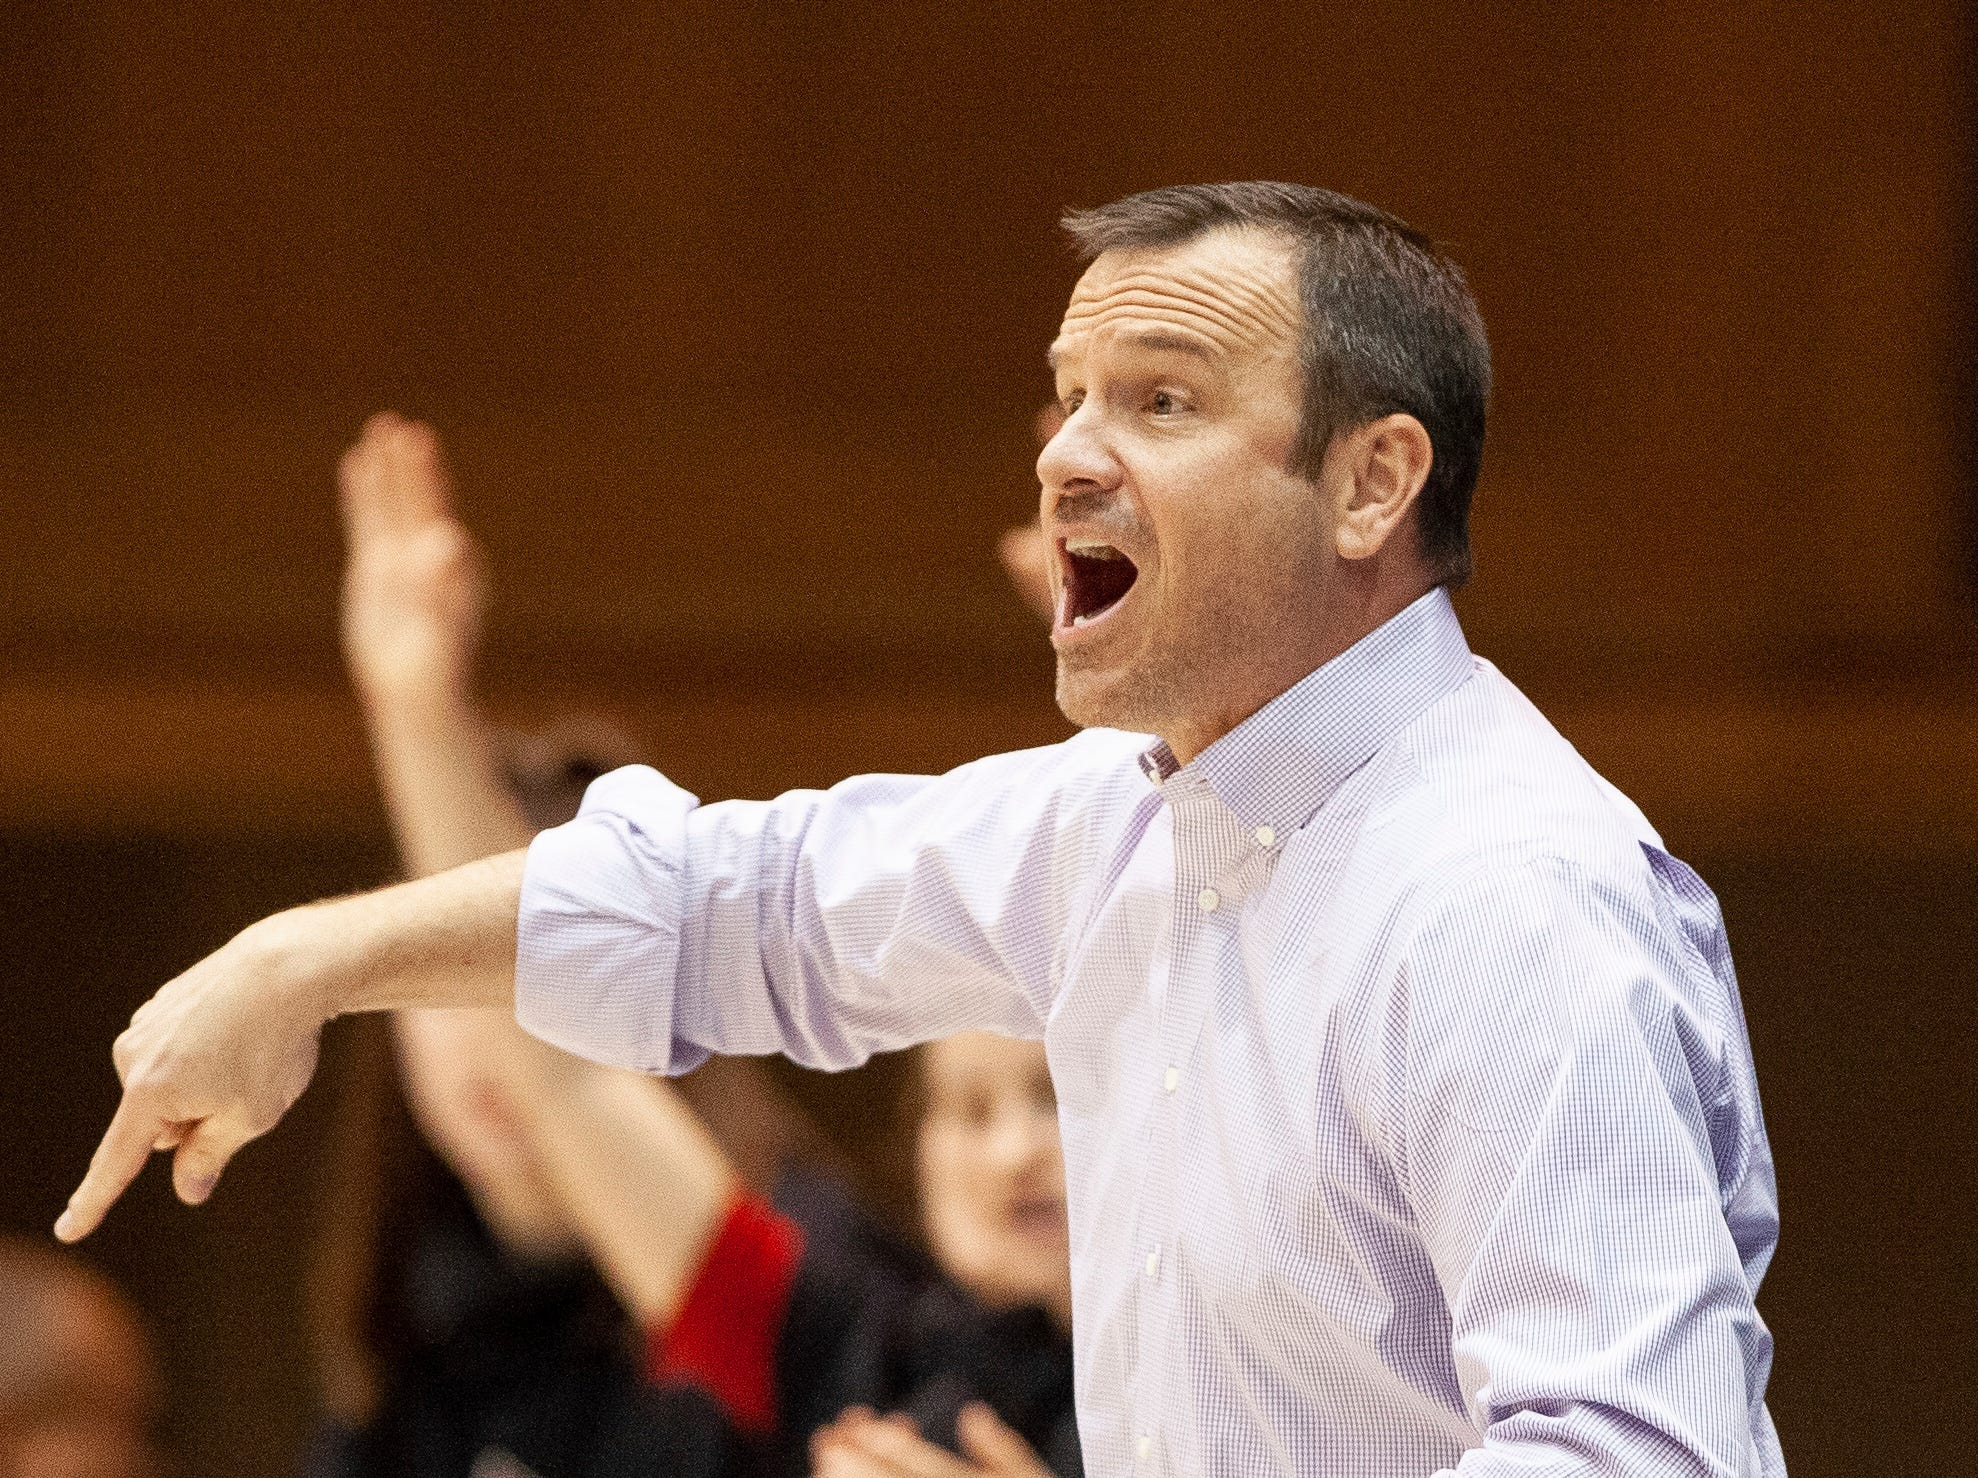 Louisville head coach Jeff Walz directs his team during the first half of an NCAA college basketball game against Duke in Durham, N.C., Sunday, Jan. 6, 2019.